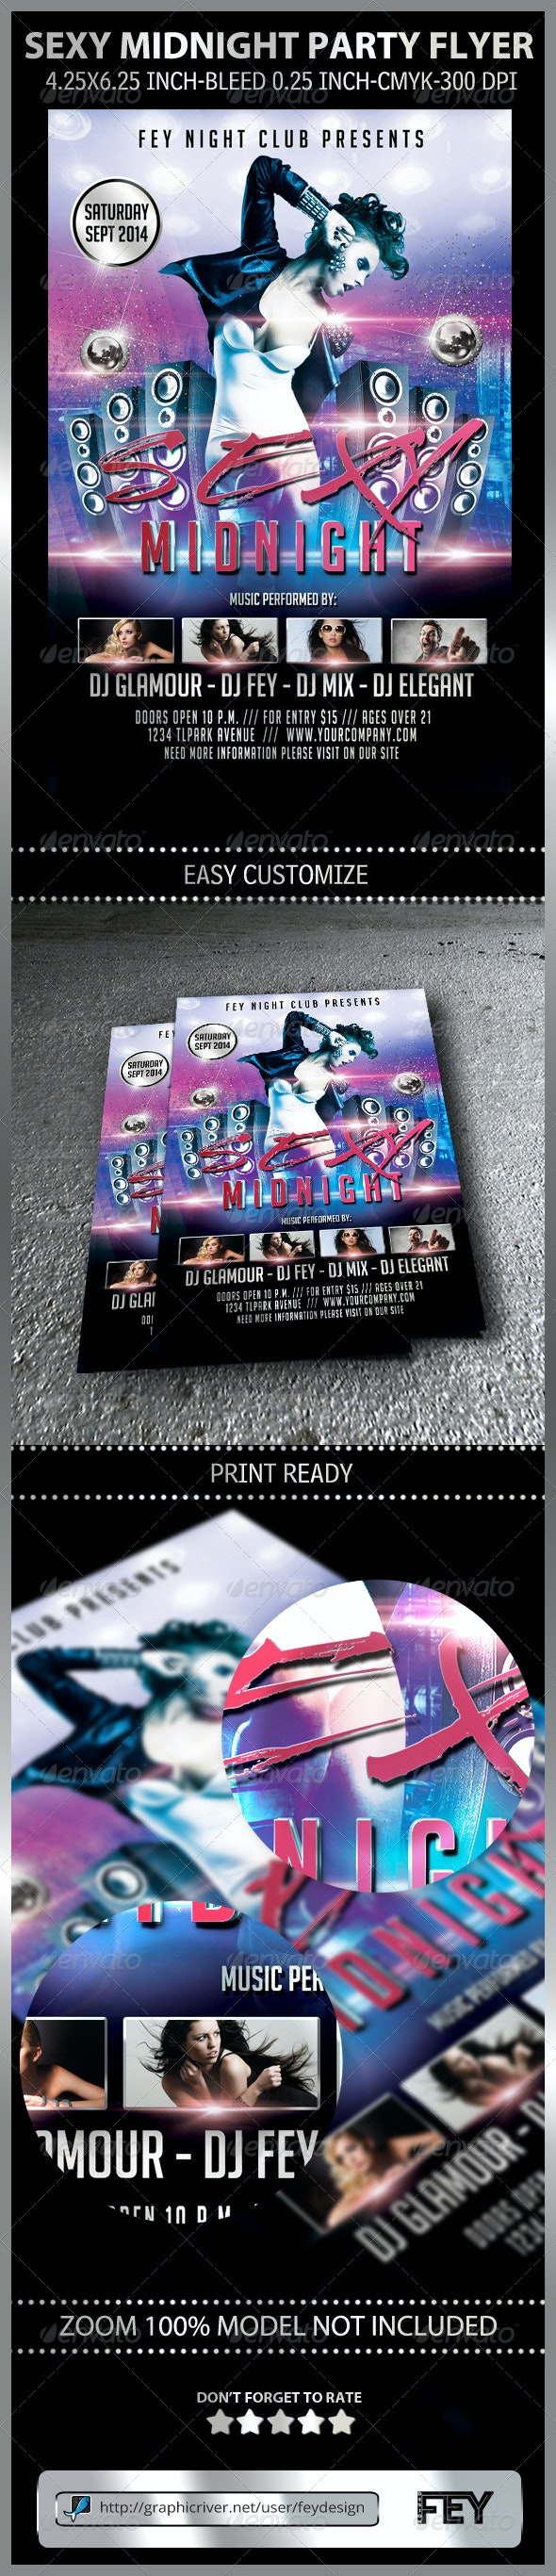 Sexy Midnight Party Flyer - Clubs & Parties Events